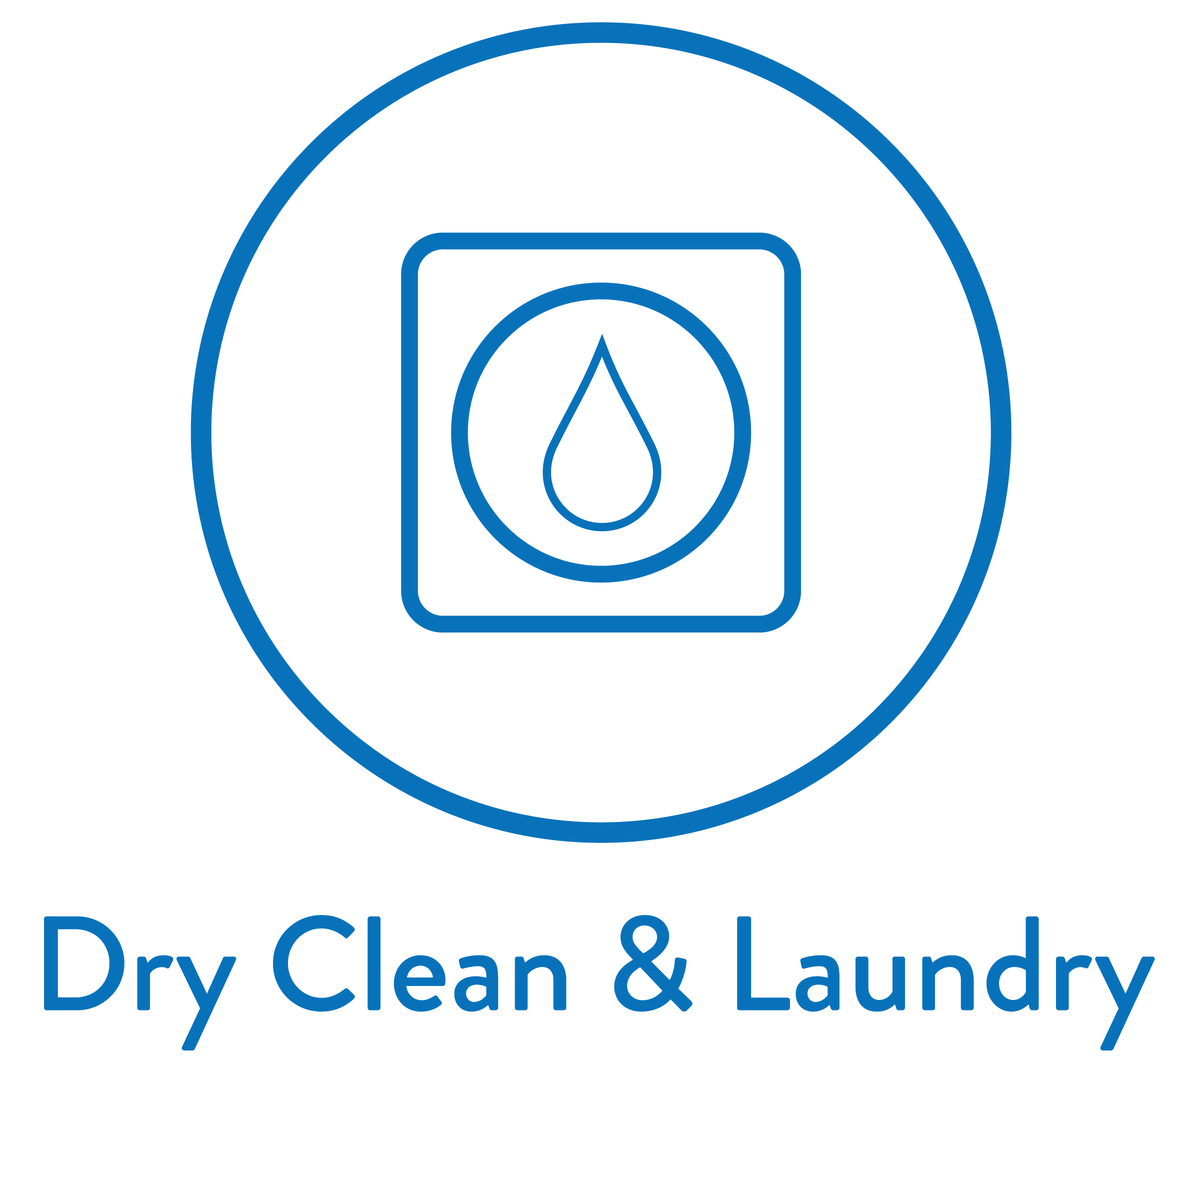 Dry Clean and Laundry